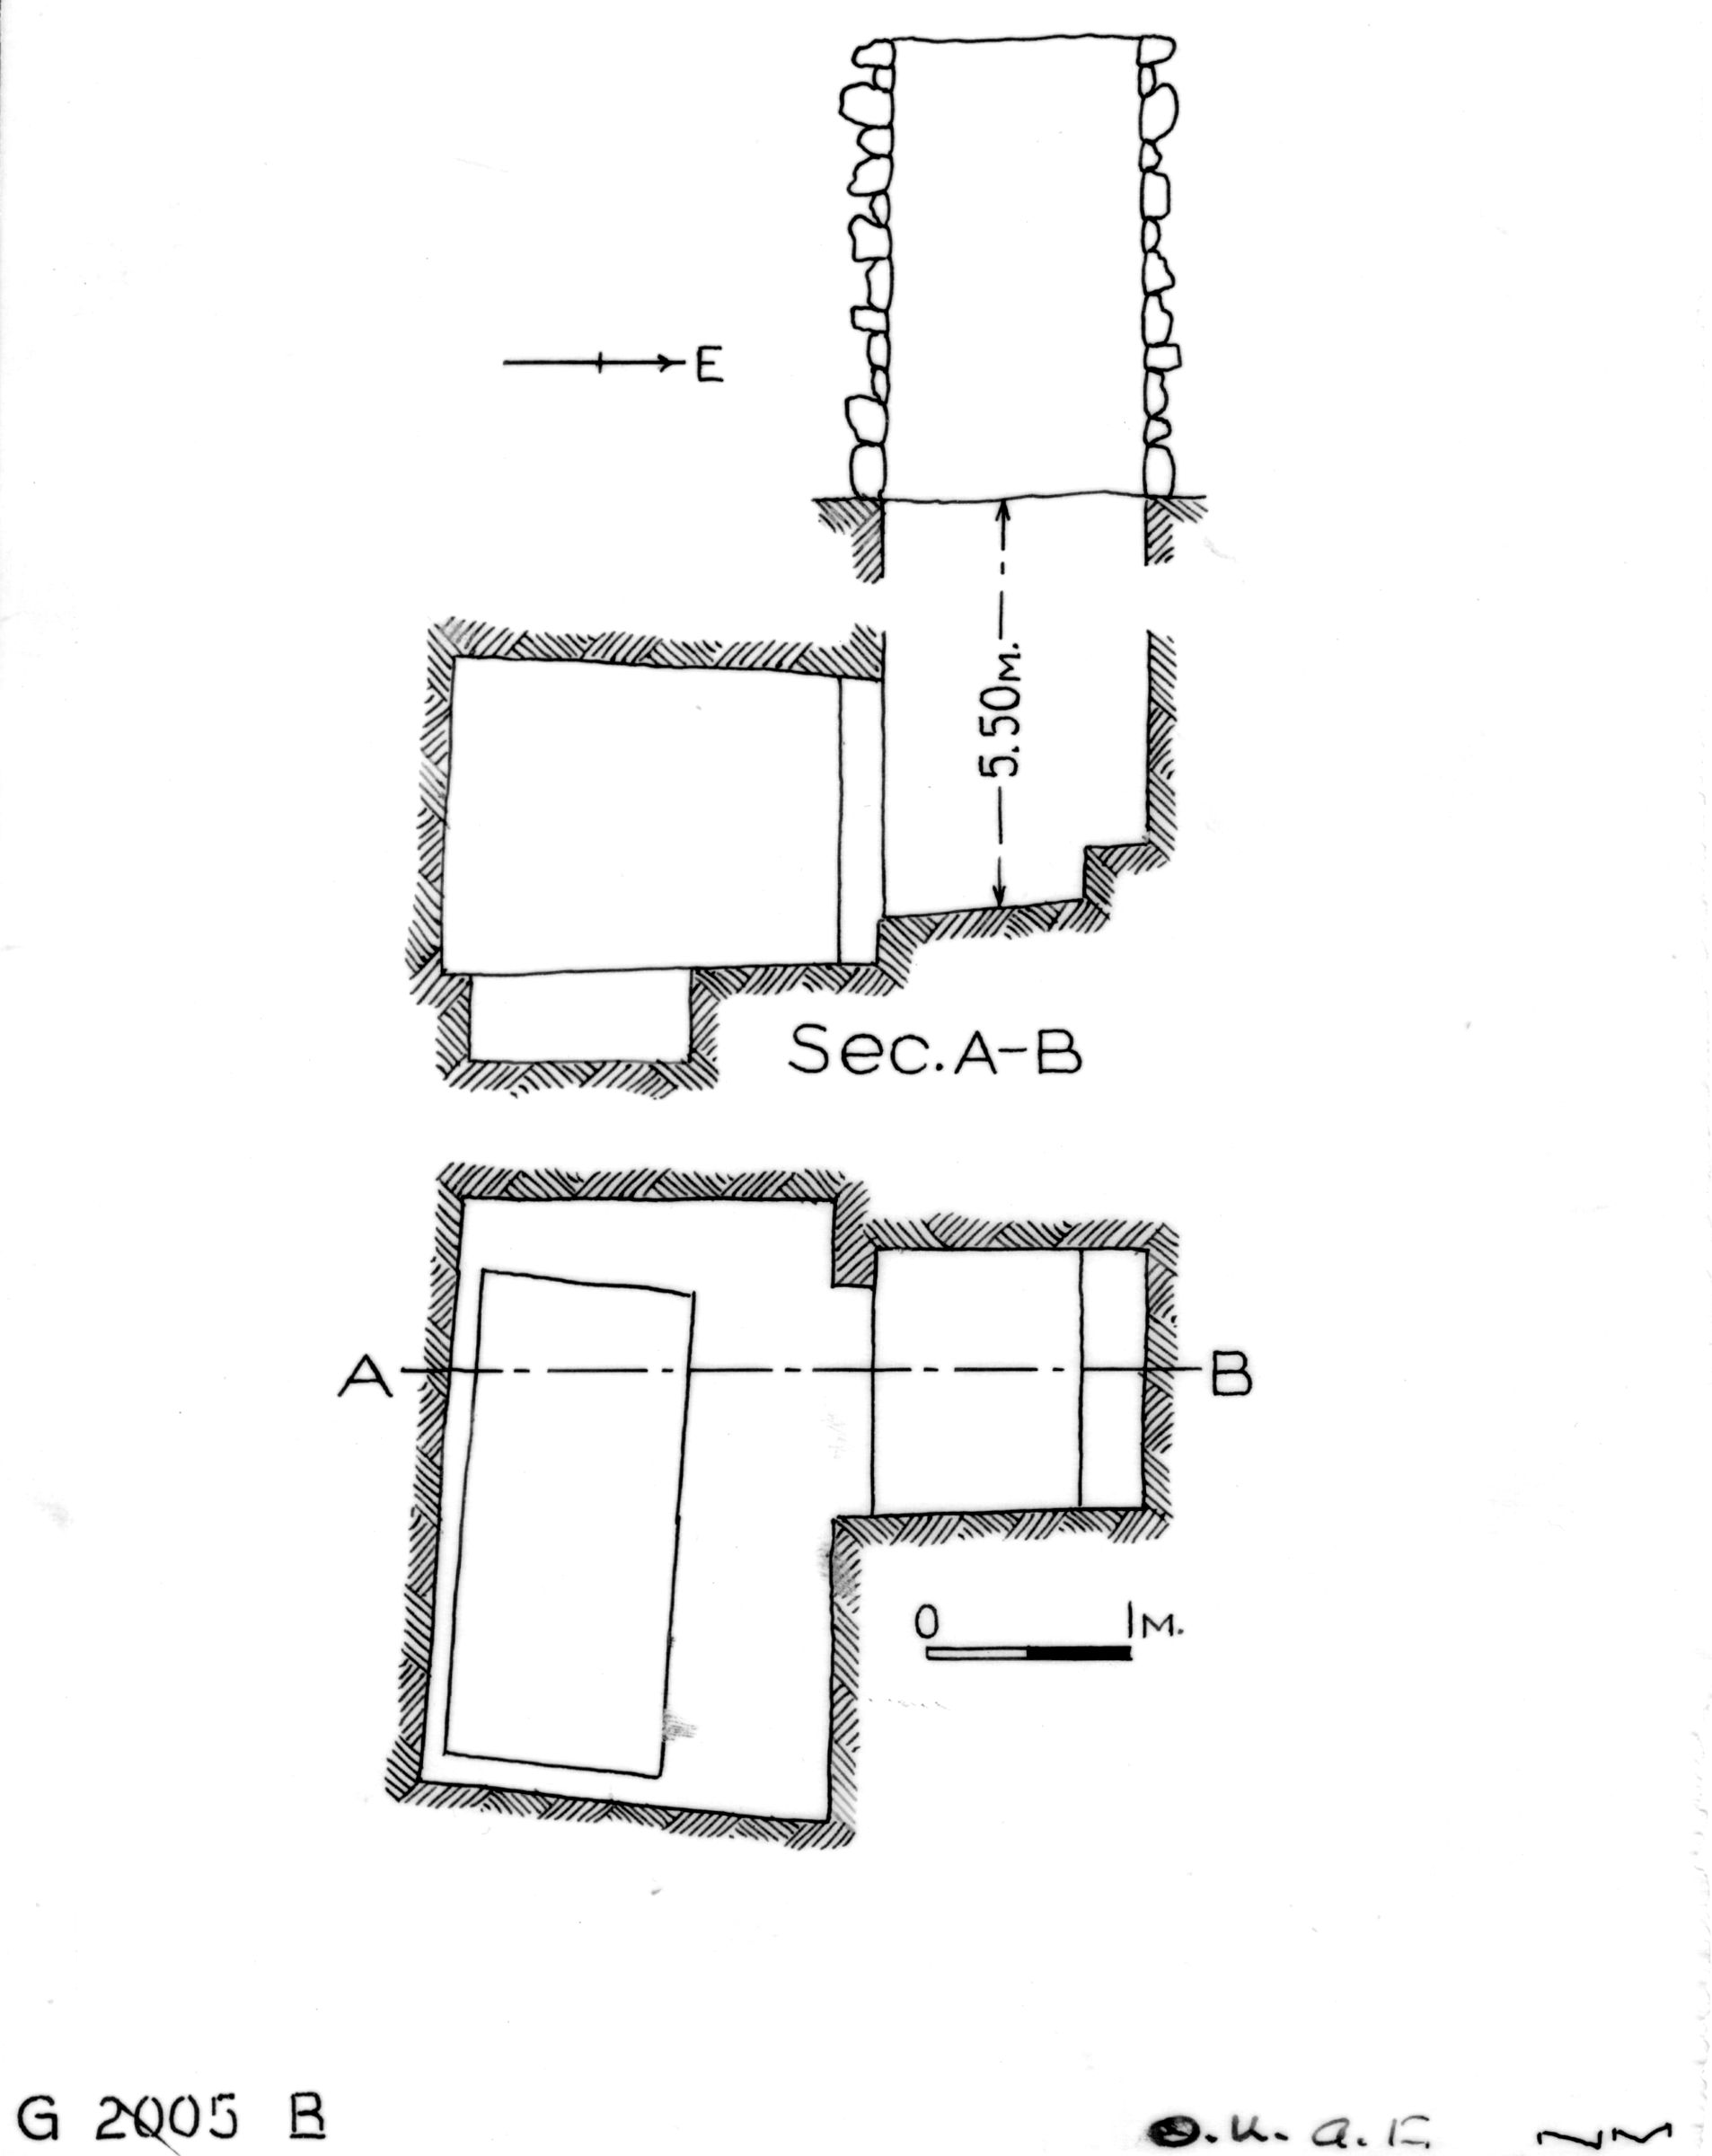 Maps and plans: G 2005, Shaft B